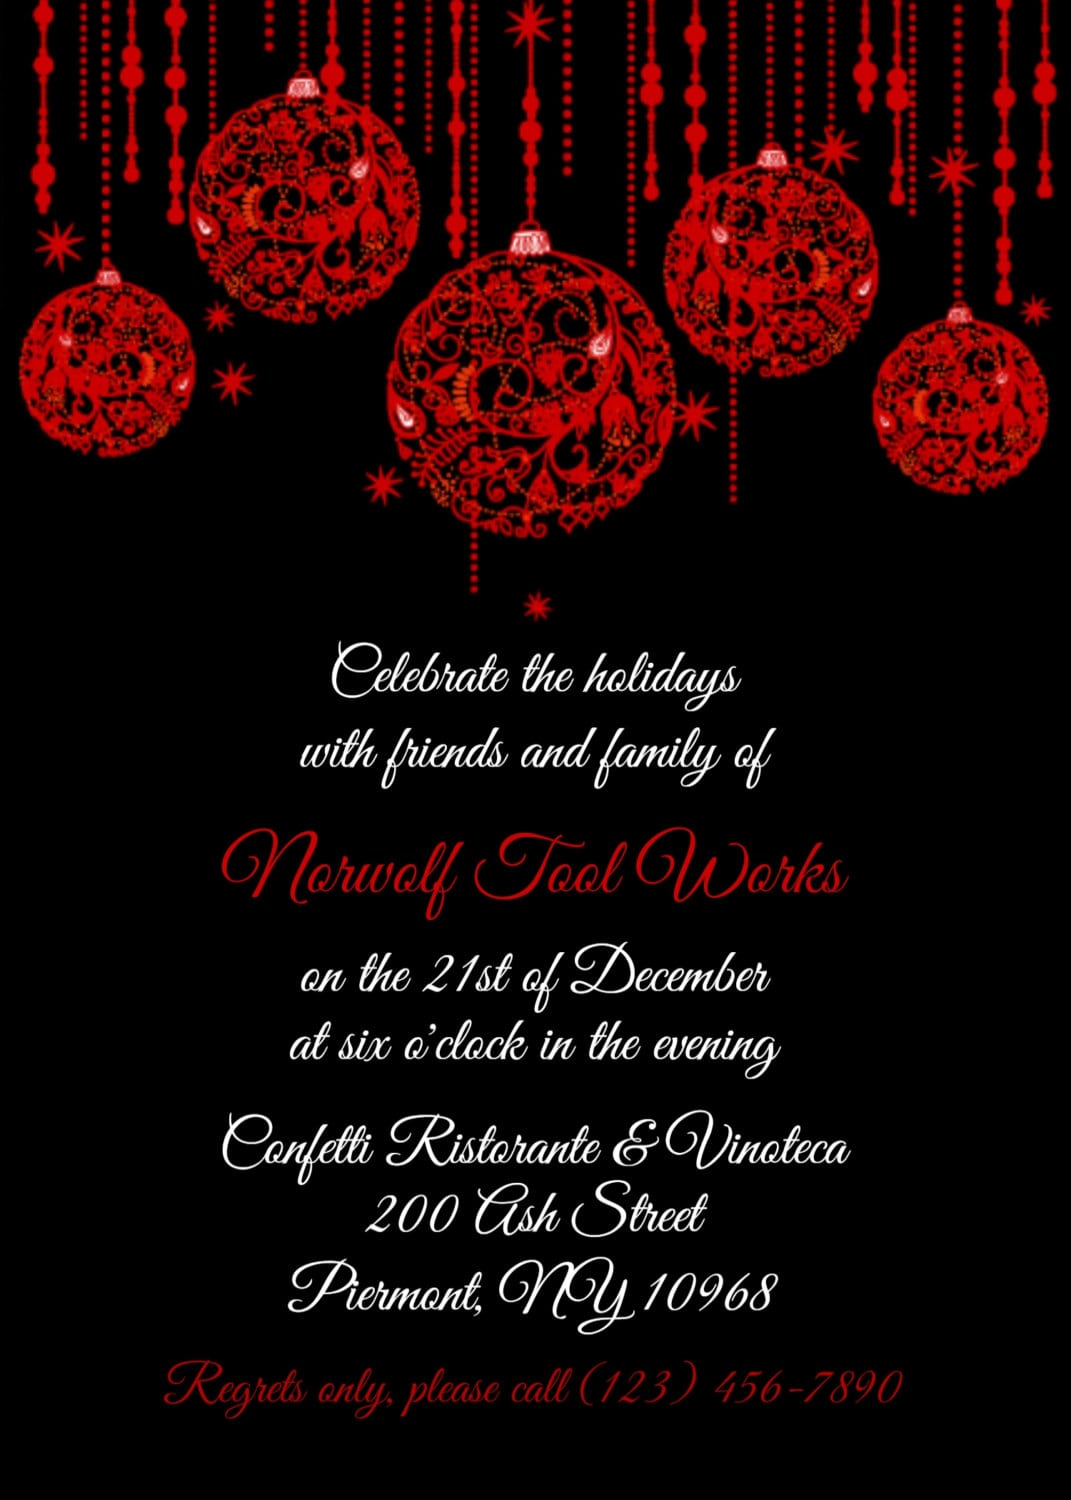 1000+ Images About Rscf Holiday Party Invitations On Pinterest